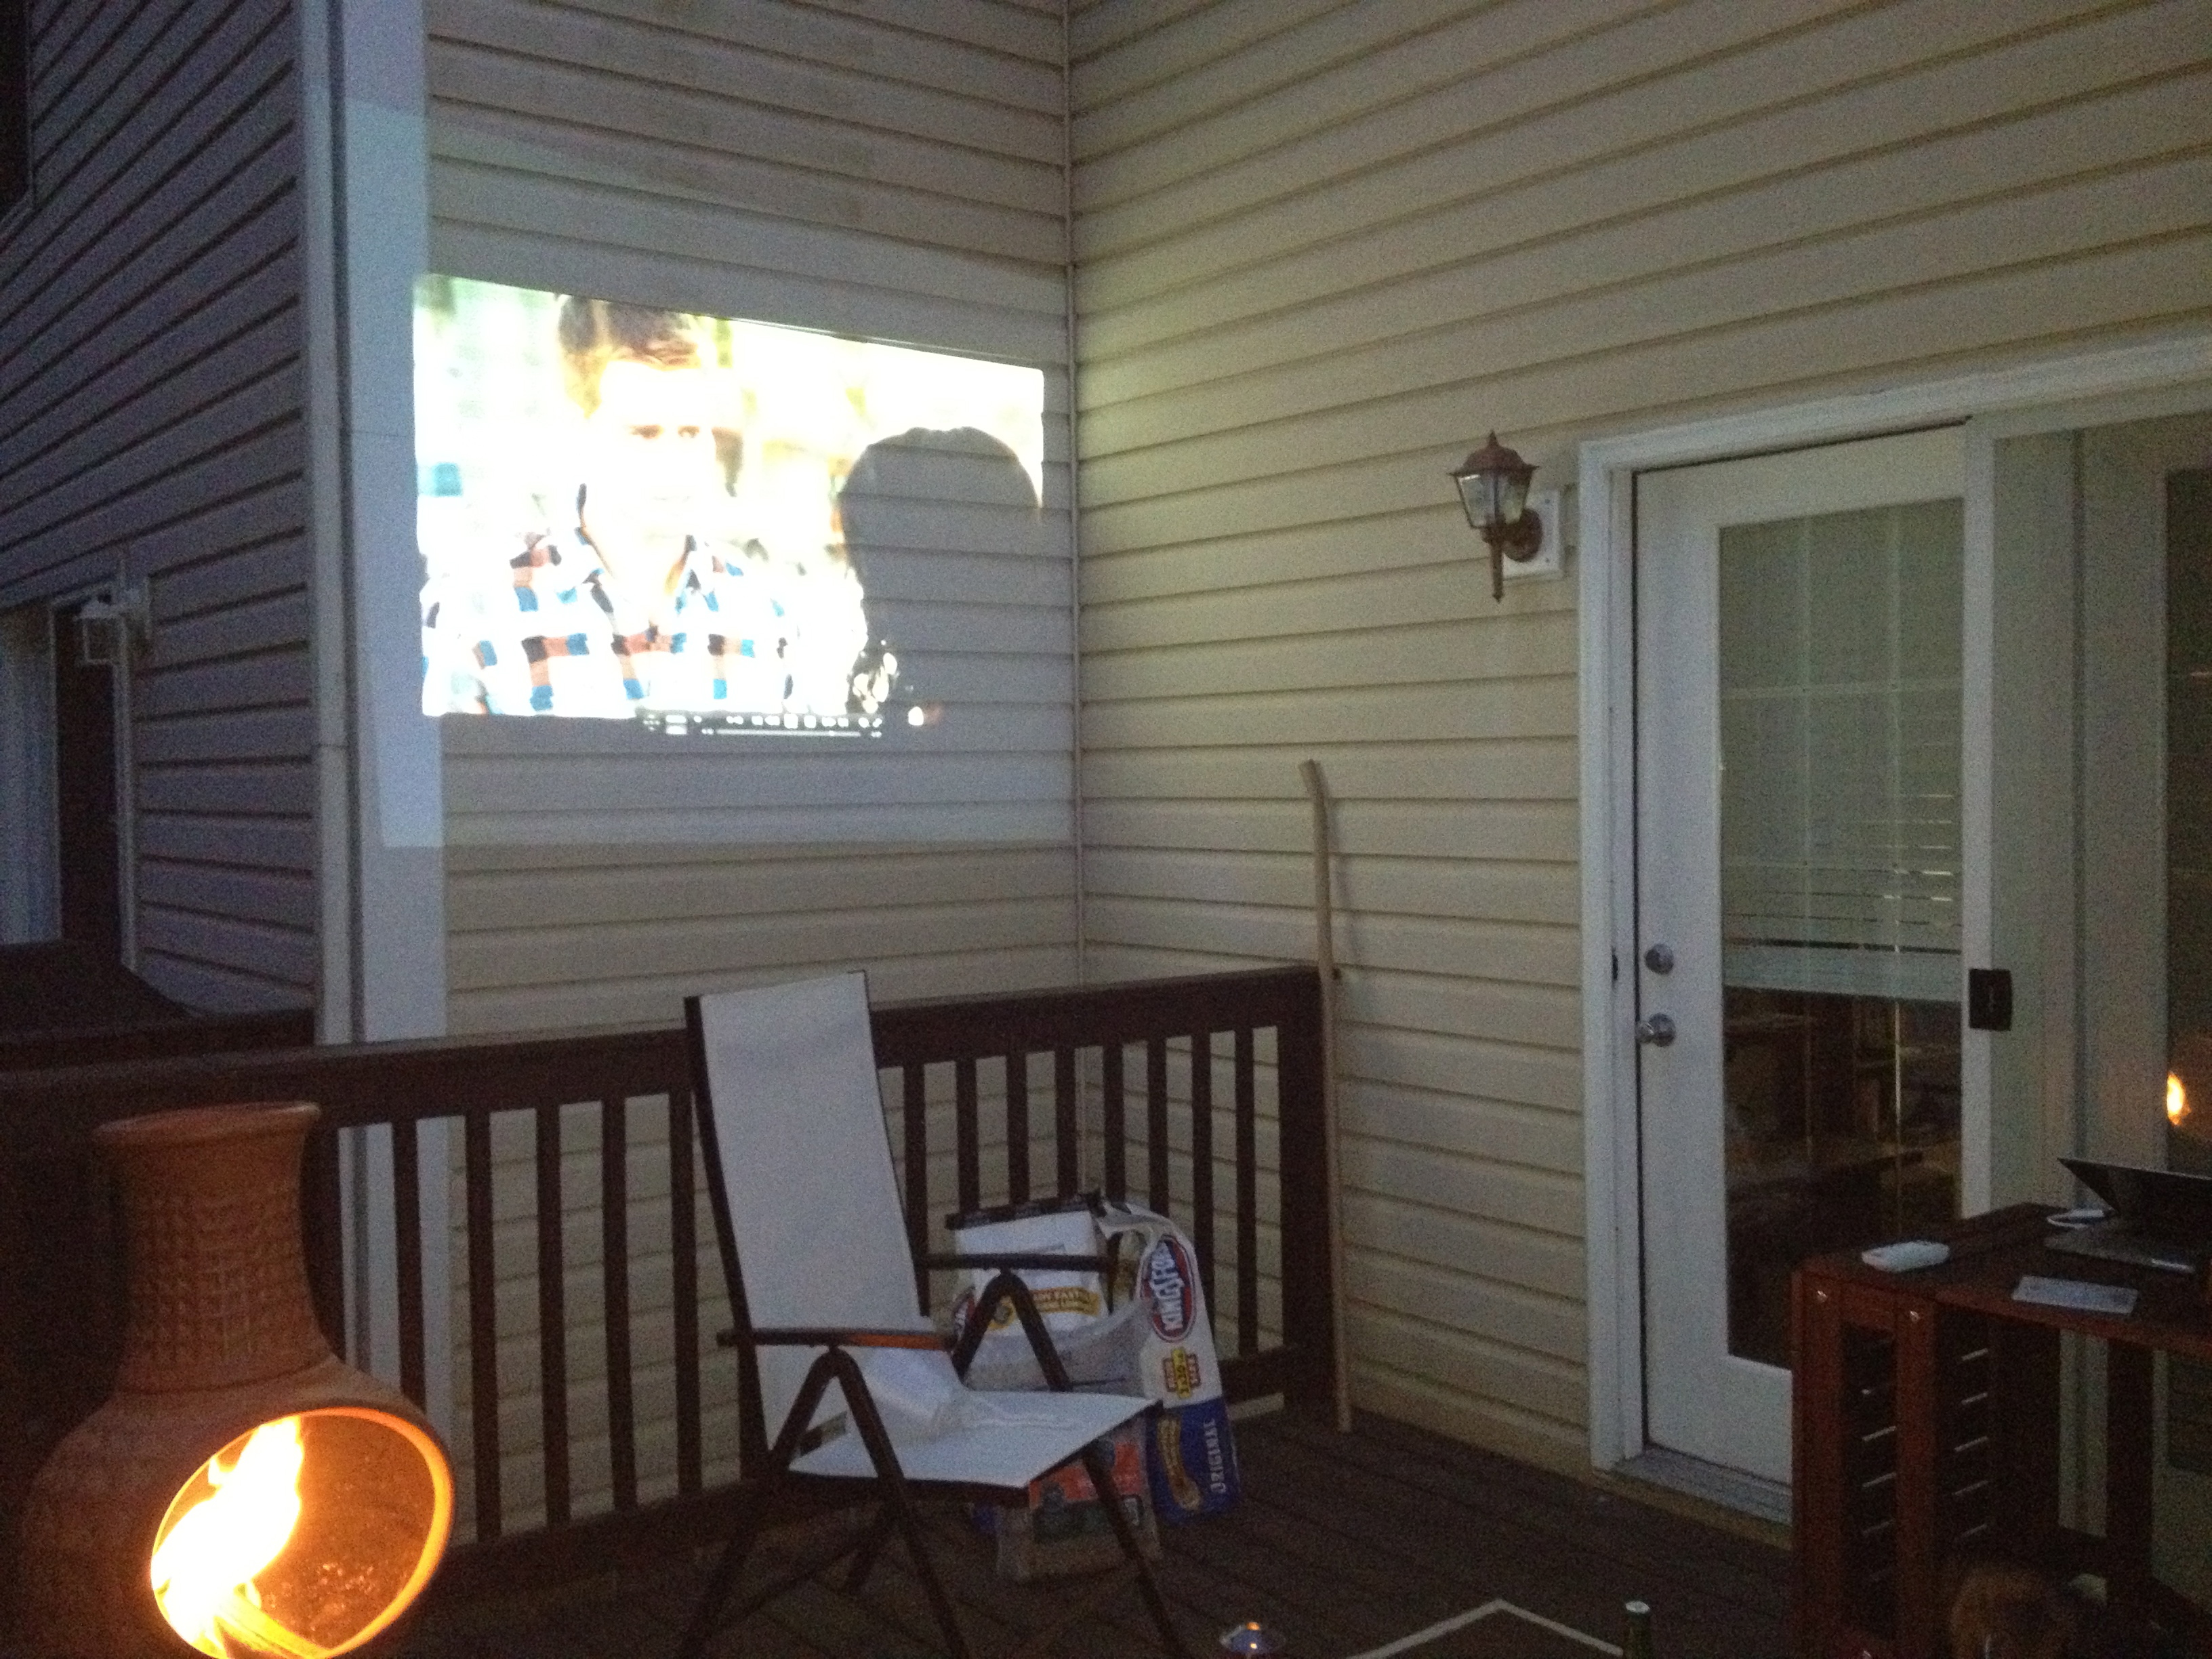 Projector on oudoor wall